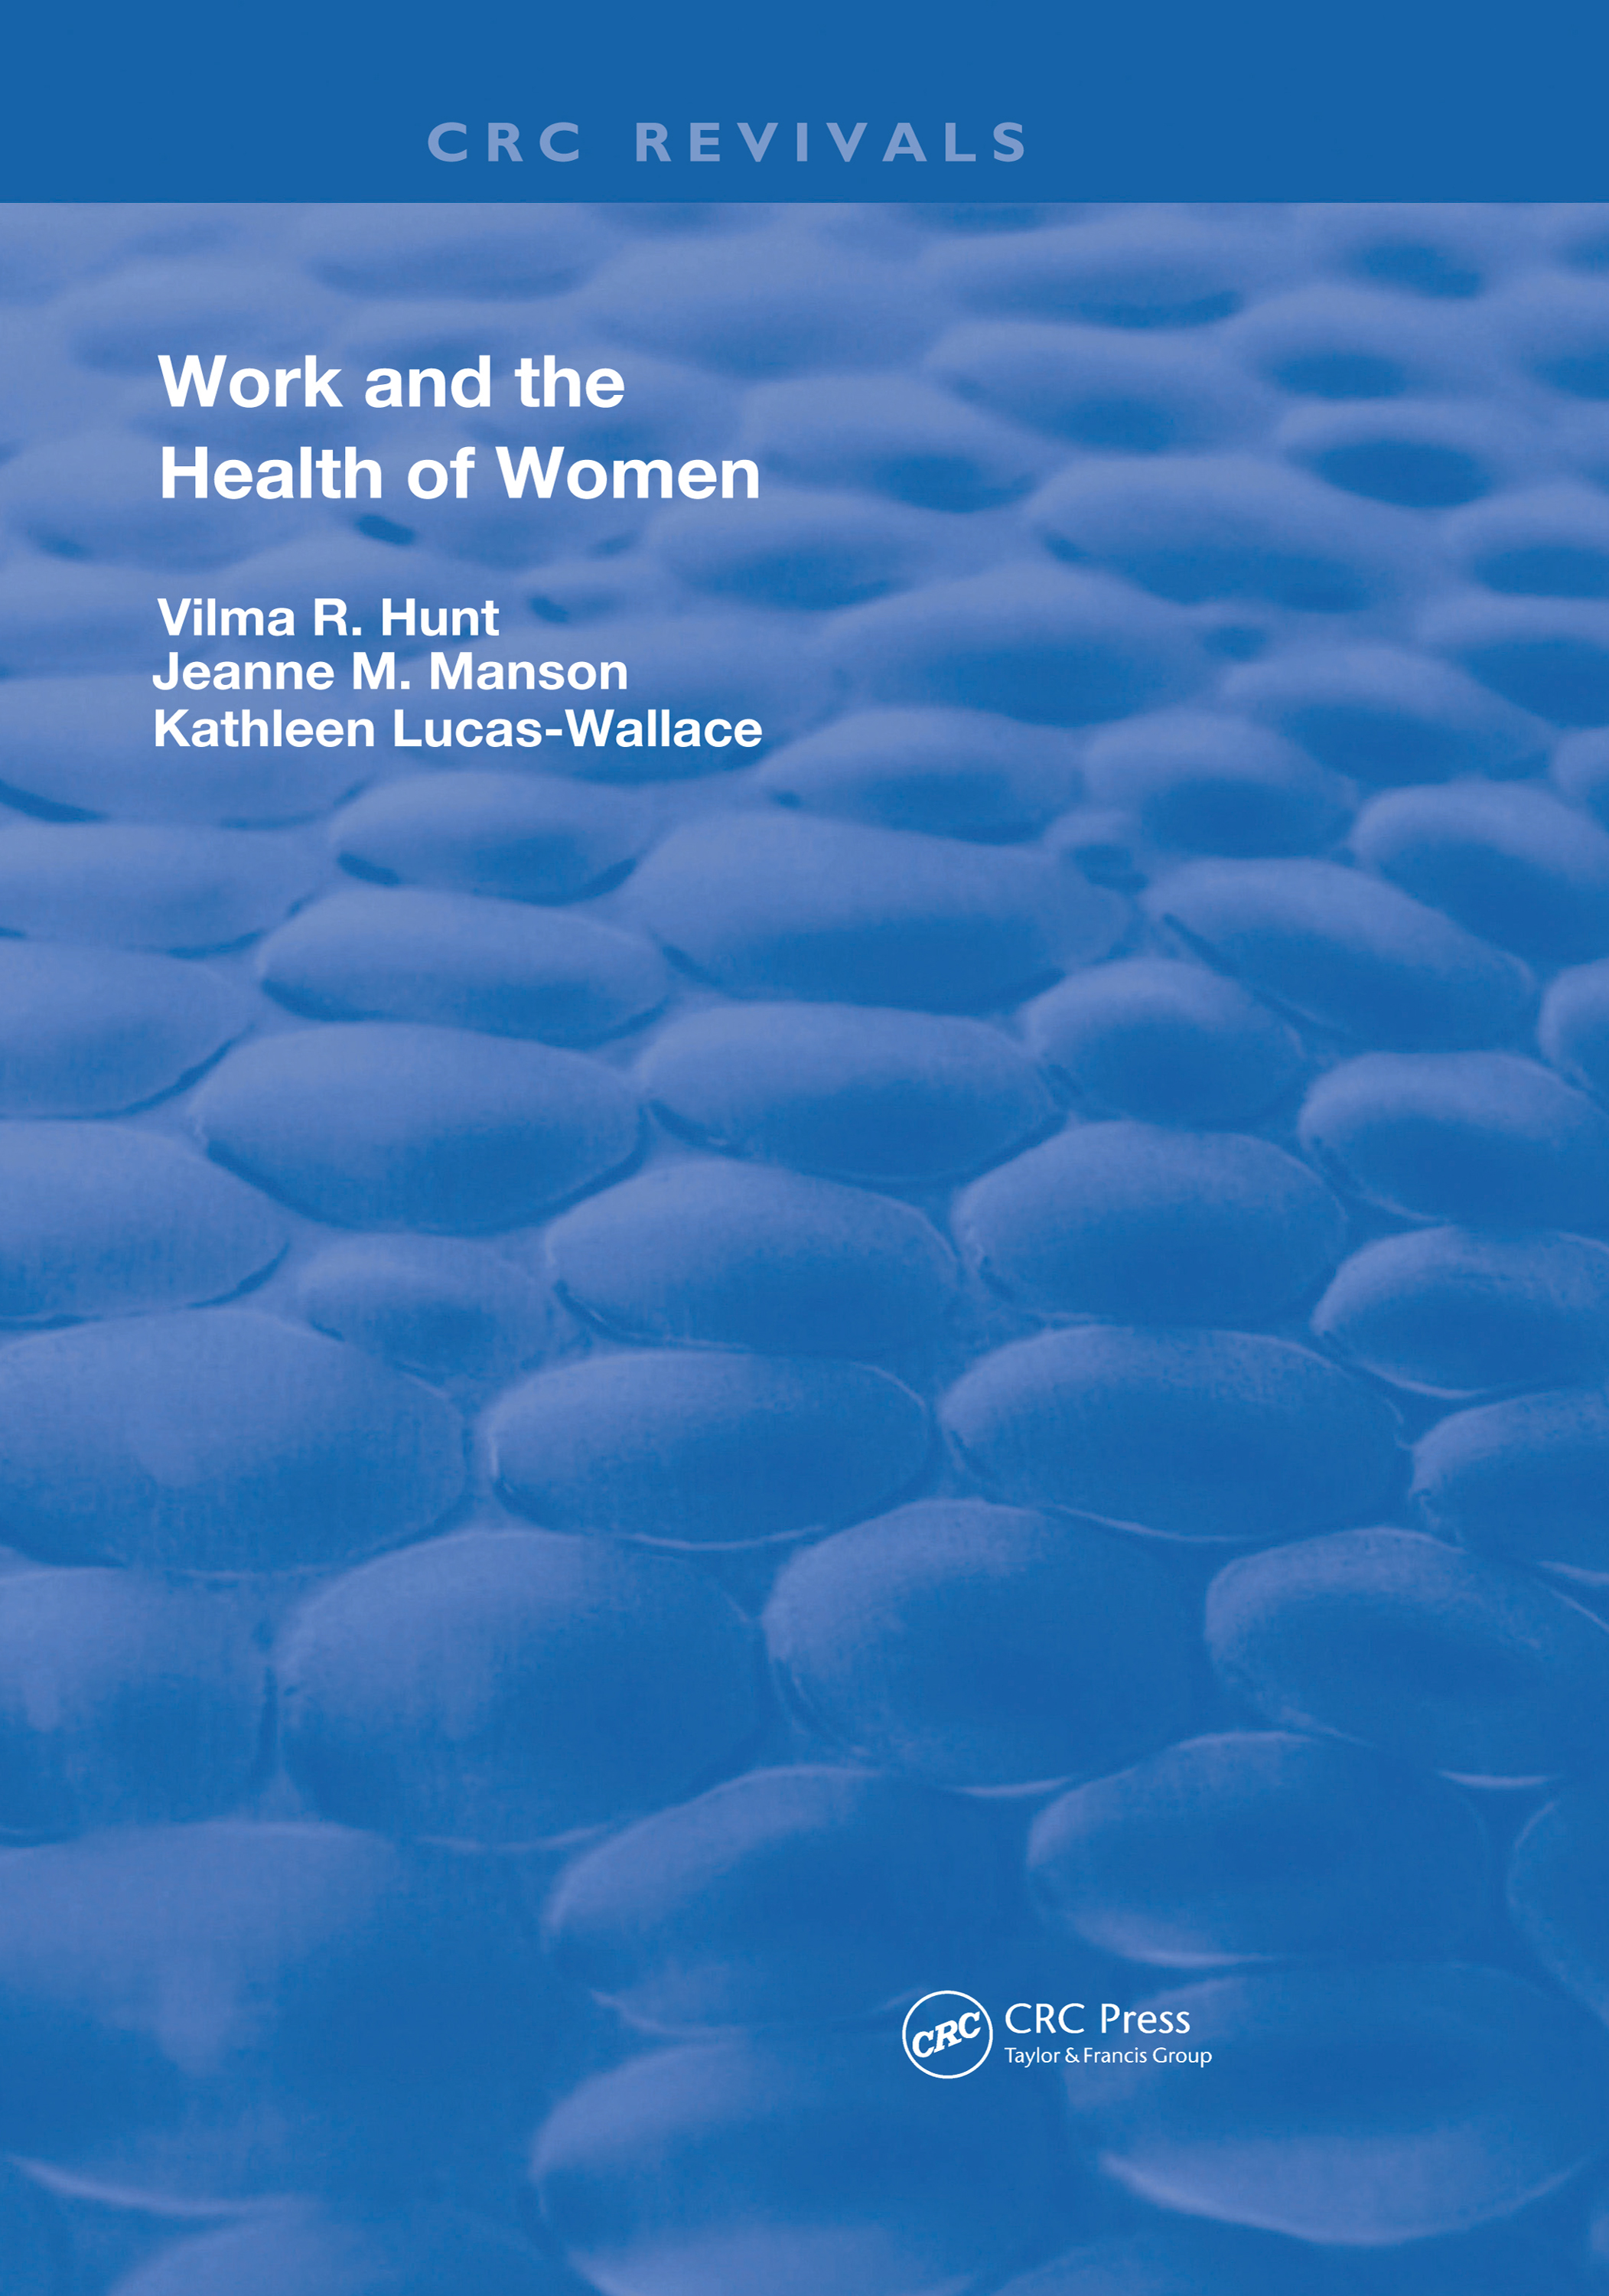 Work and the Health of Women